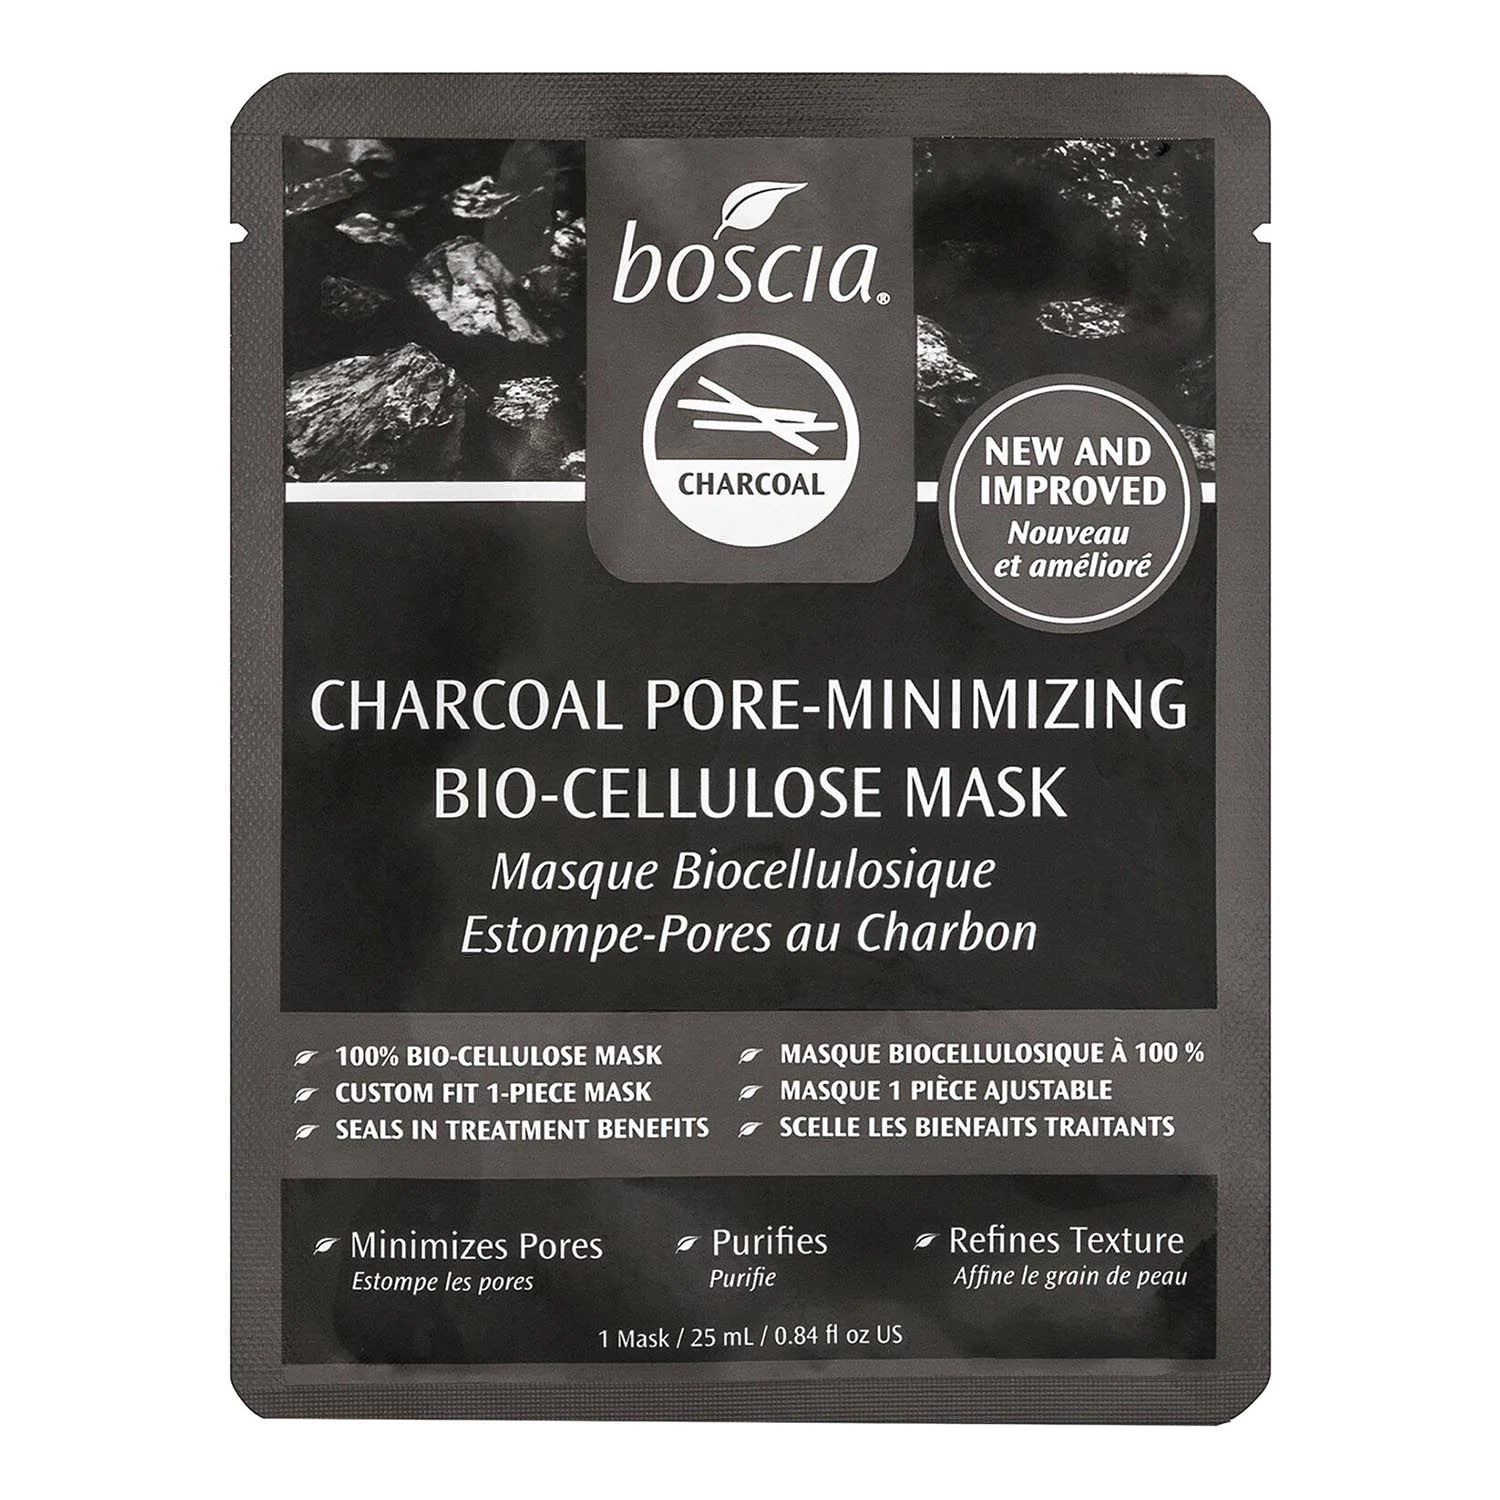 Charcoal Pore-Minimizing Bio-Cellulose de Boscia,